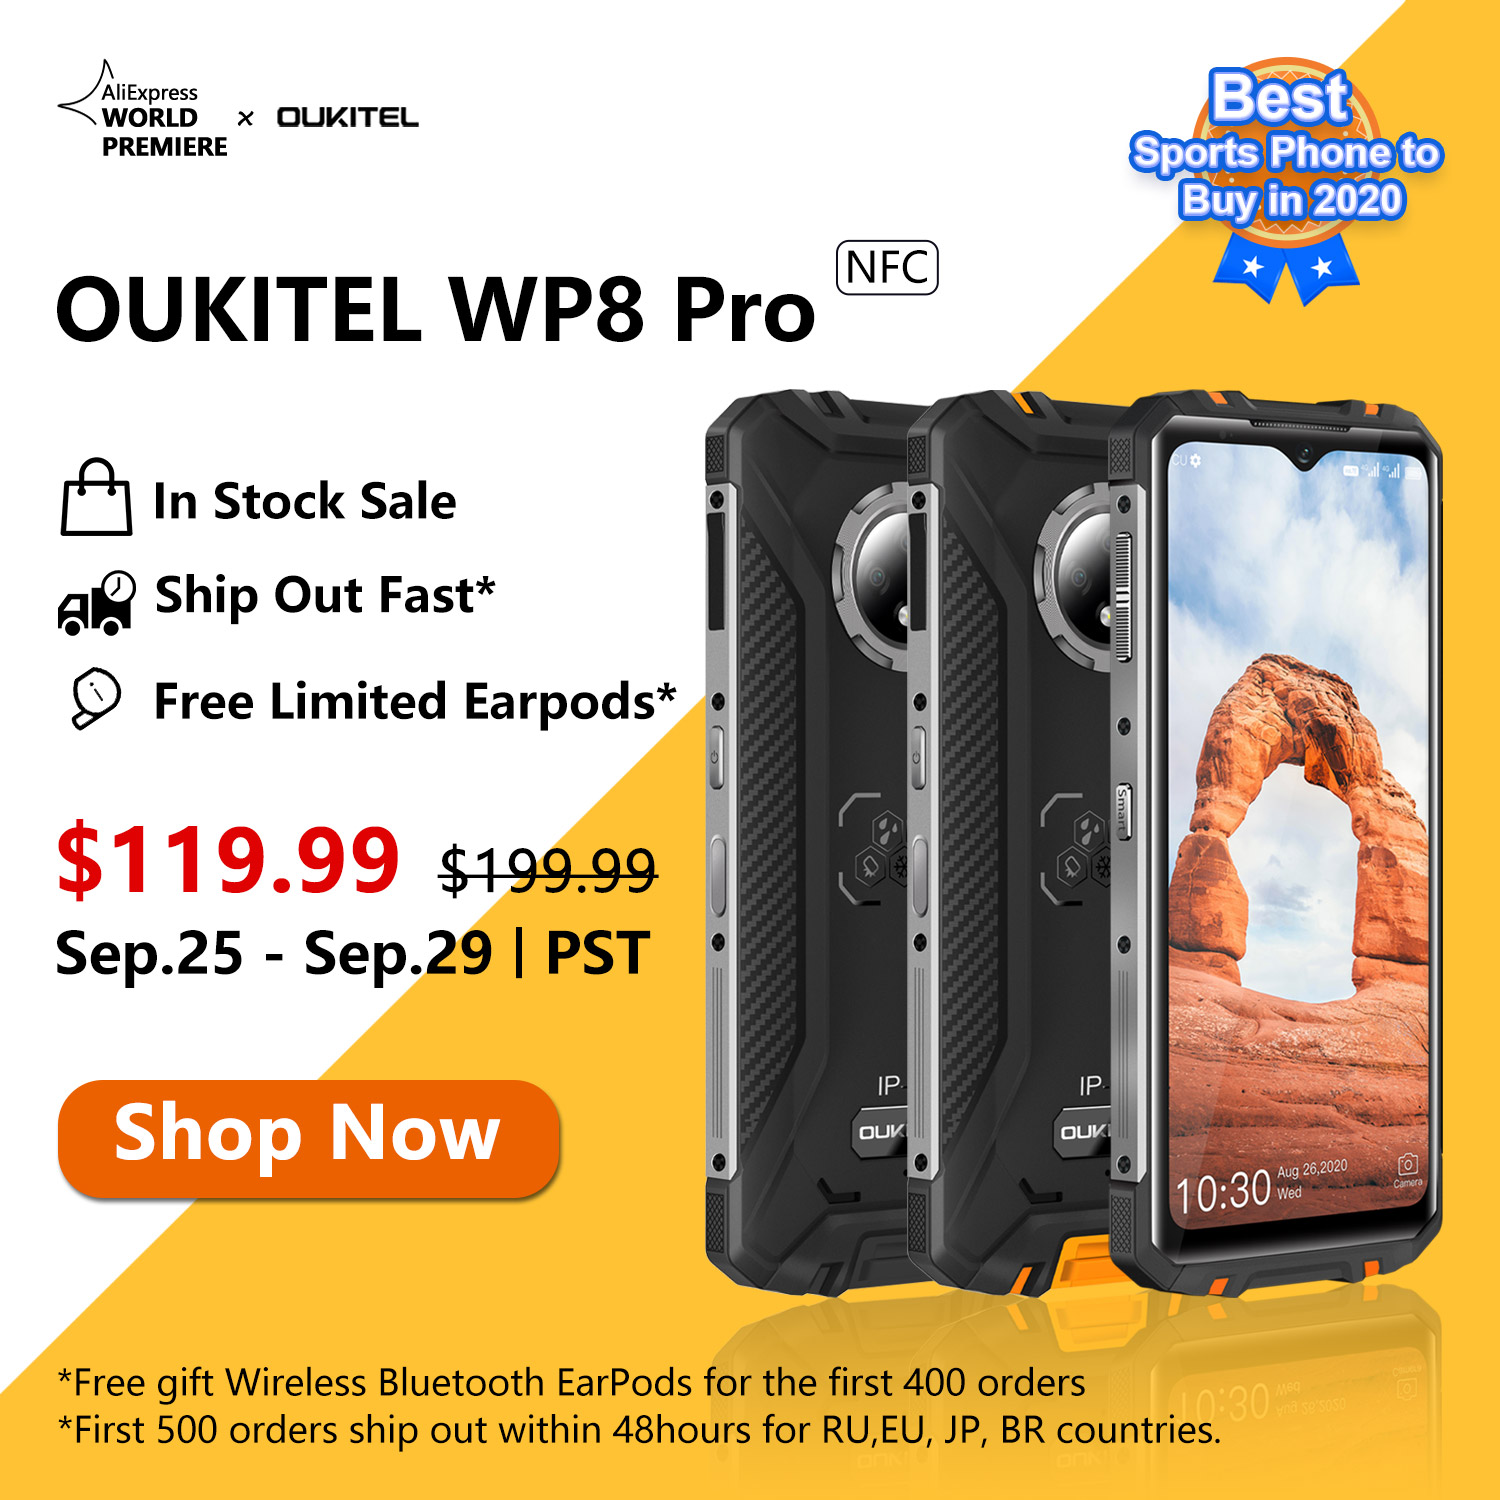 Global Open Sale Live Now📣📣 The best #SportsPhone  #OUKITEL #WP8Pro now available at $119.99 only😍